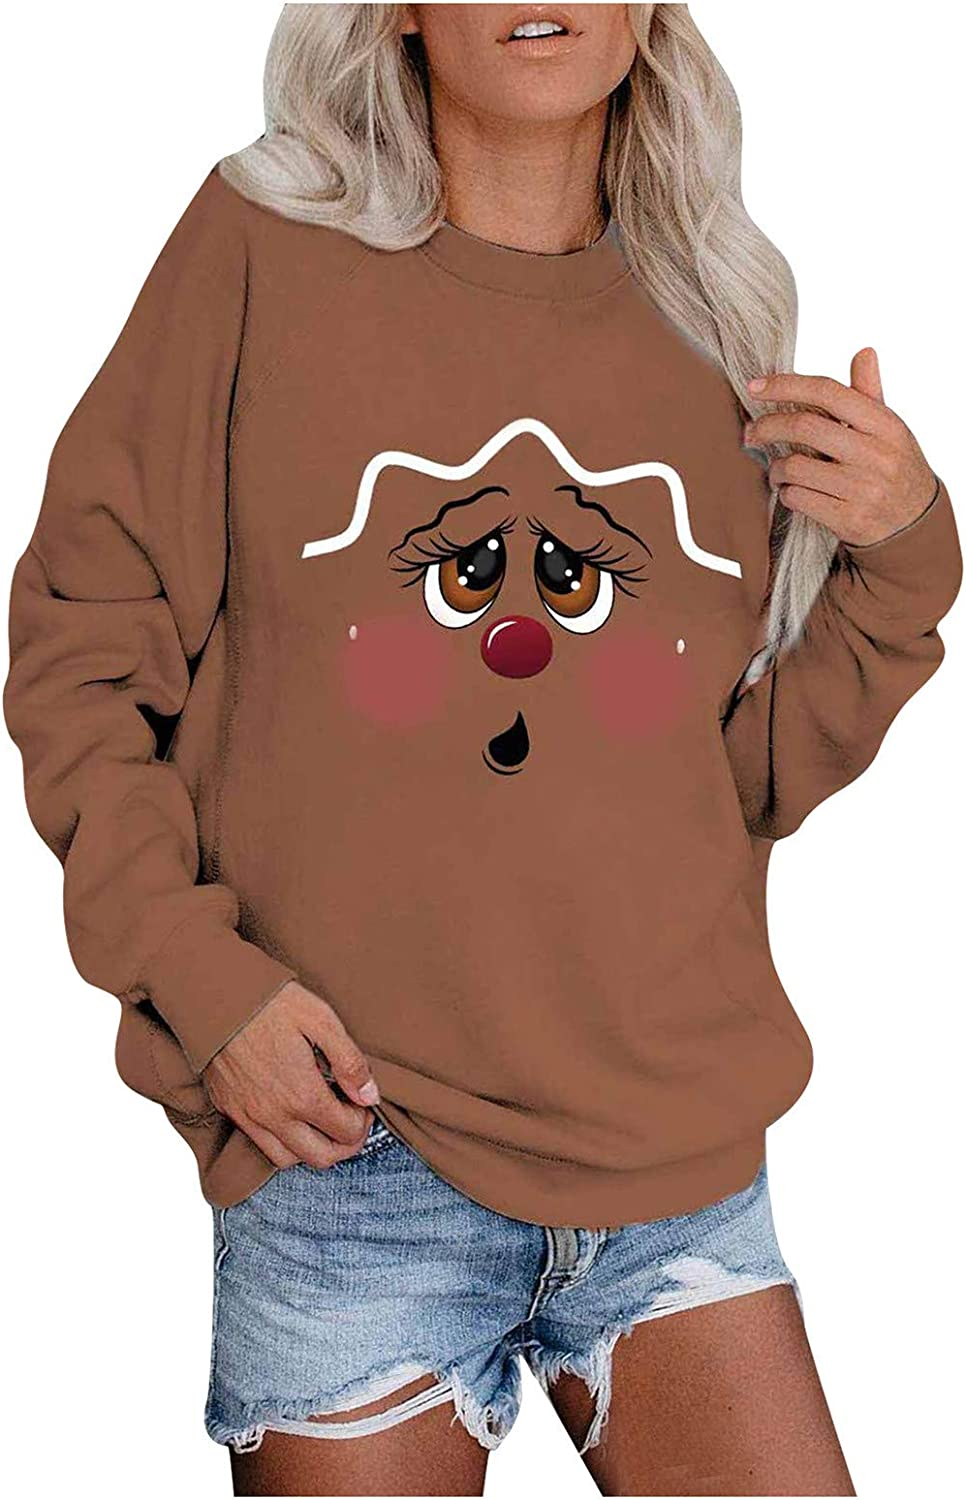 Pottseth Pullover Sweatshirt for Women,Christmas Graphic Printed Sweatshirt Casual Long Sleeve Solid Color Blouses Tops